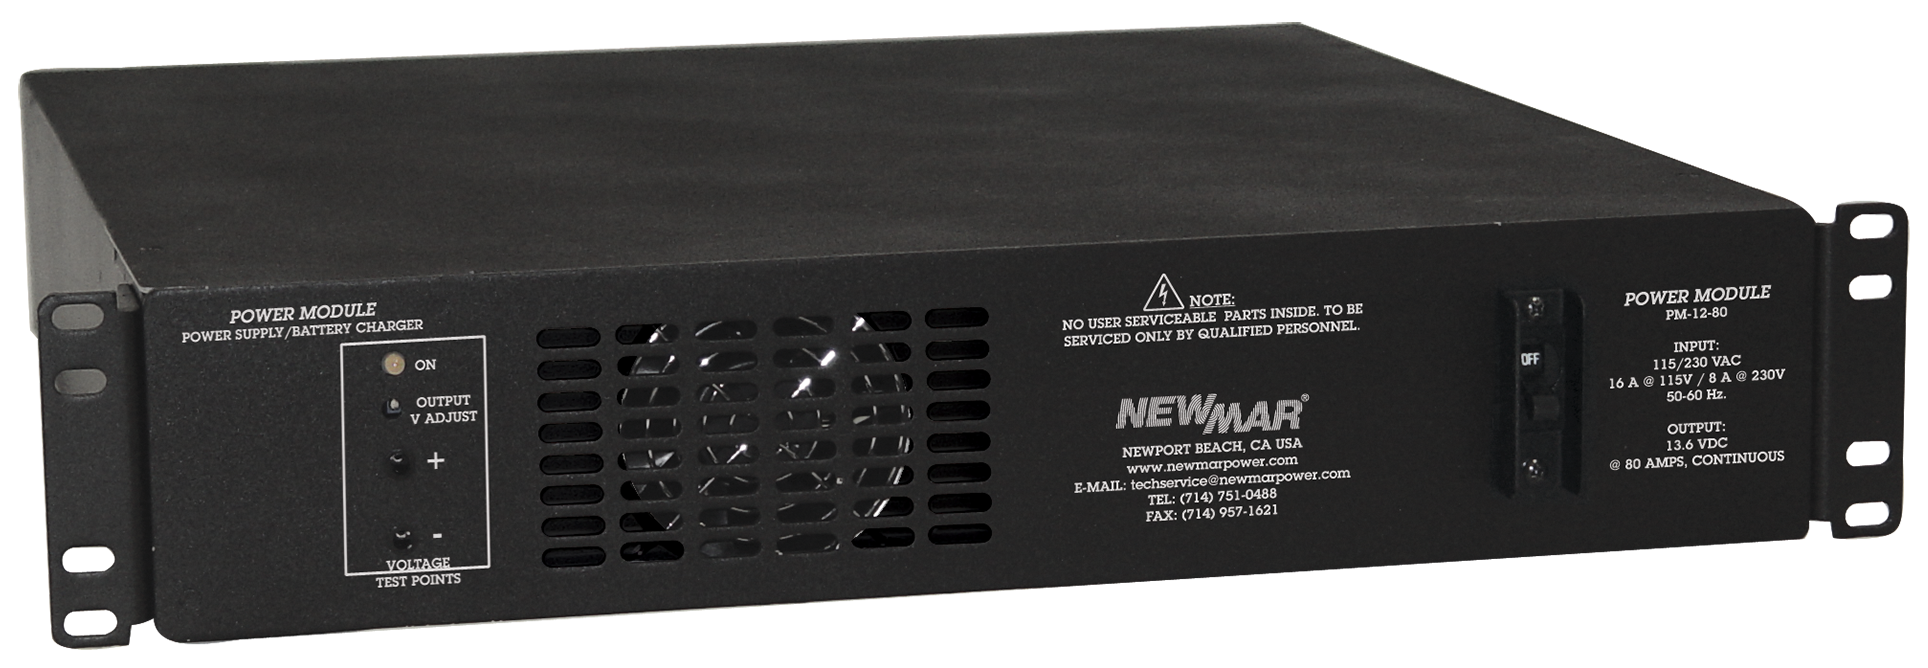 Power Modules, Rackmount DC Power System, 12V, 24V, and 48V DC, 560 - 2000 Watts, 10-80 Amps by Newmar Powering the Network